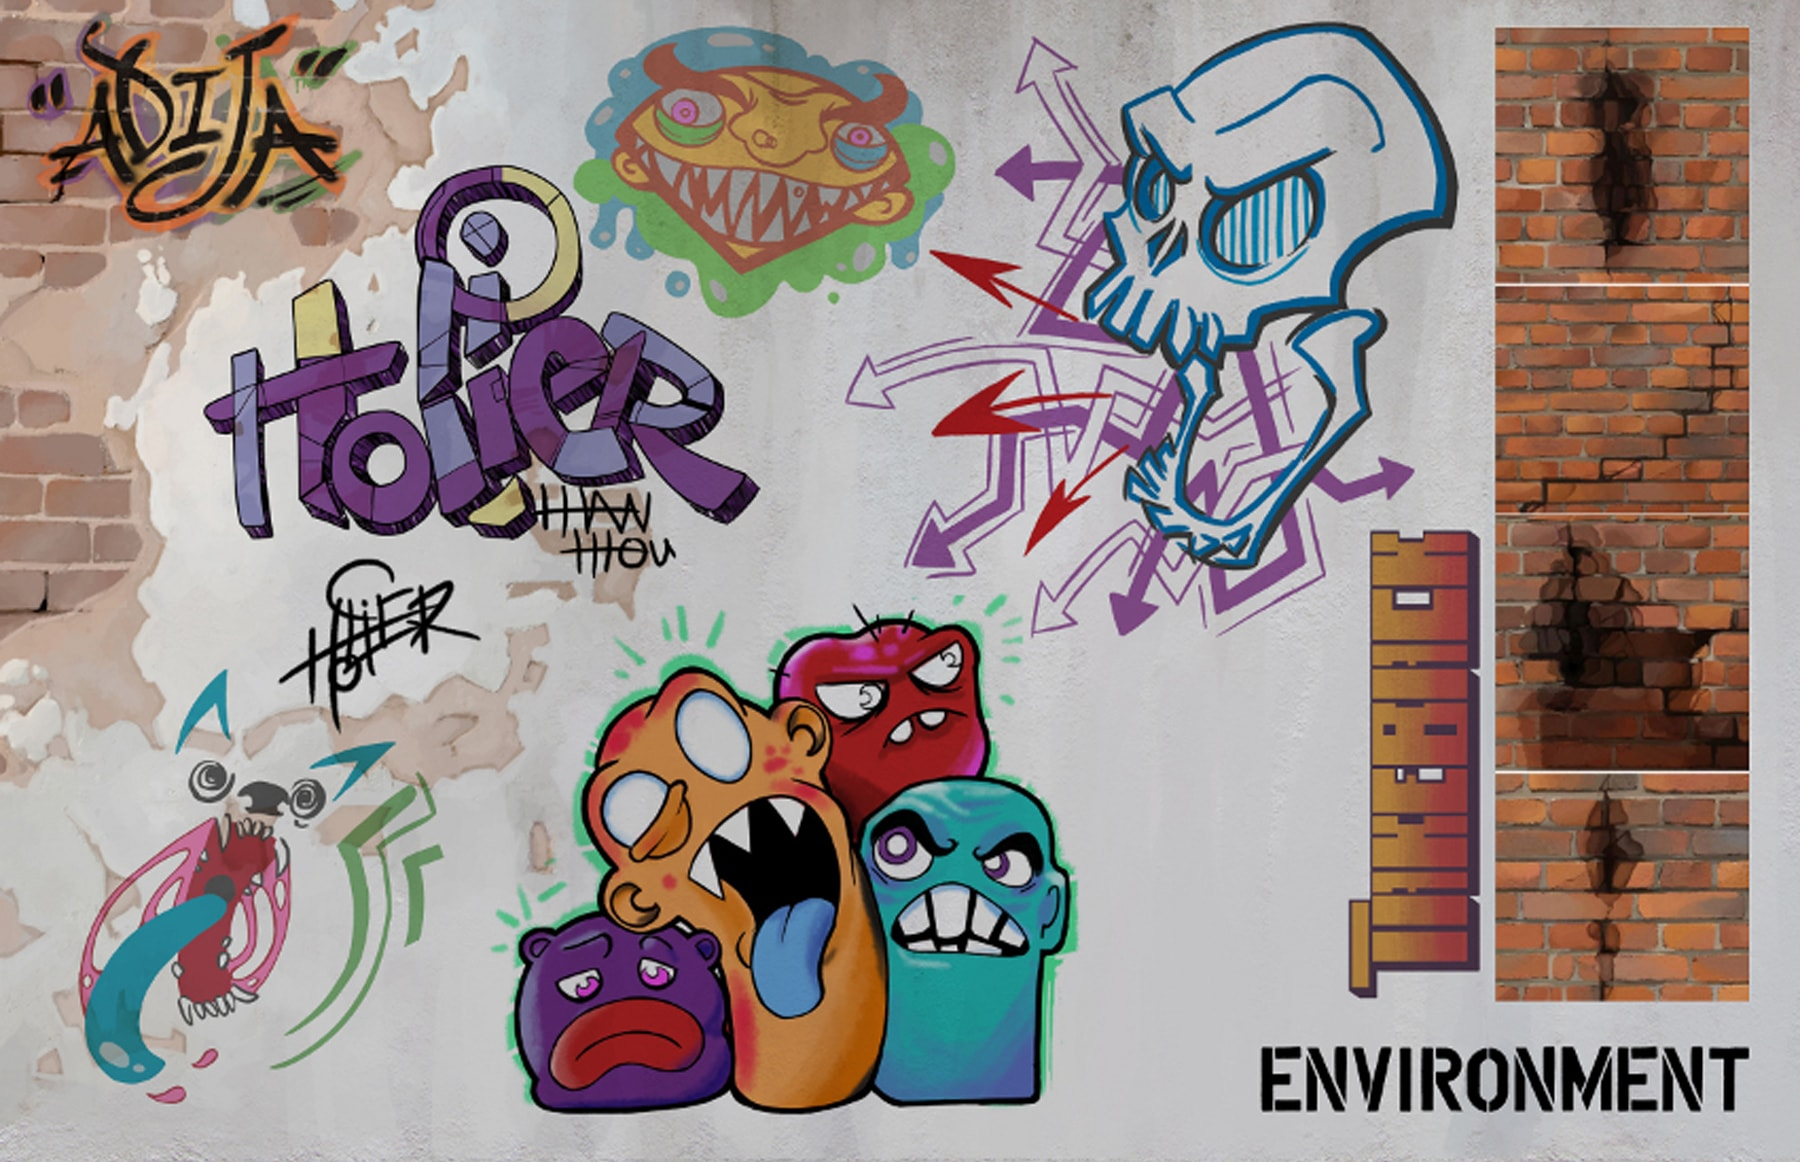 Illustration of elements of Adija's environment, including graffiti artwork and cracked brick walls